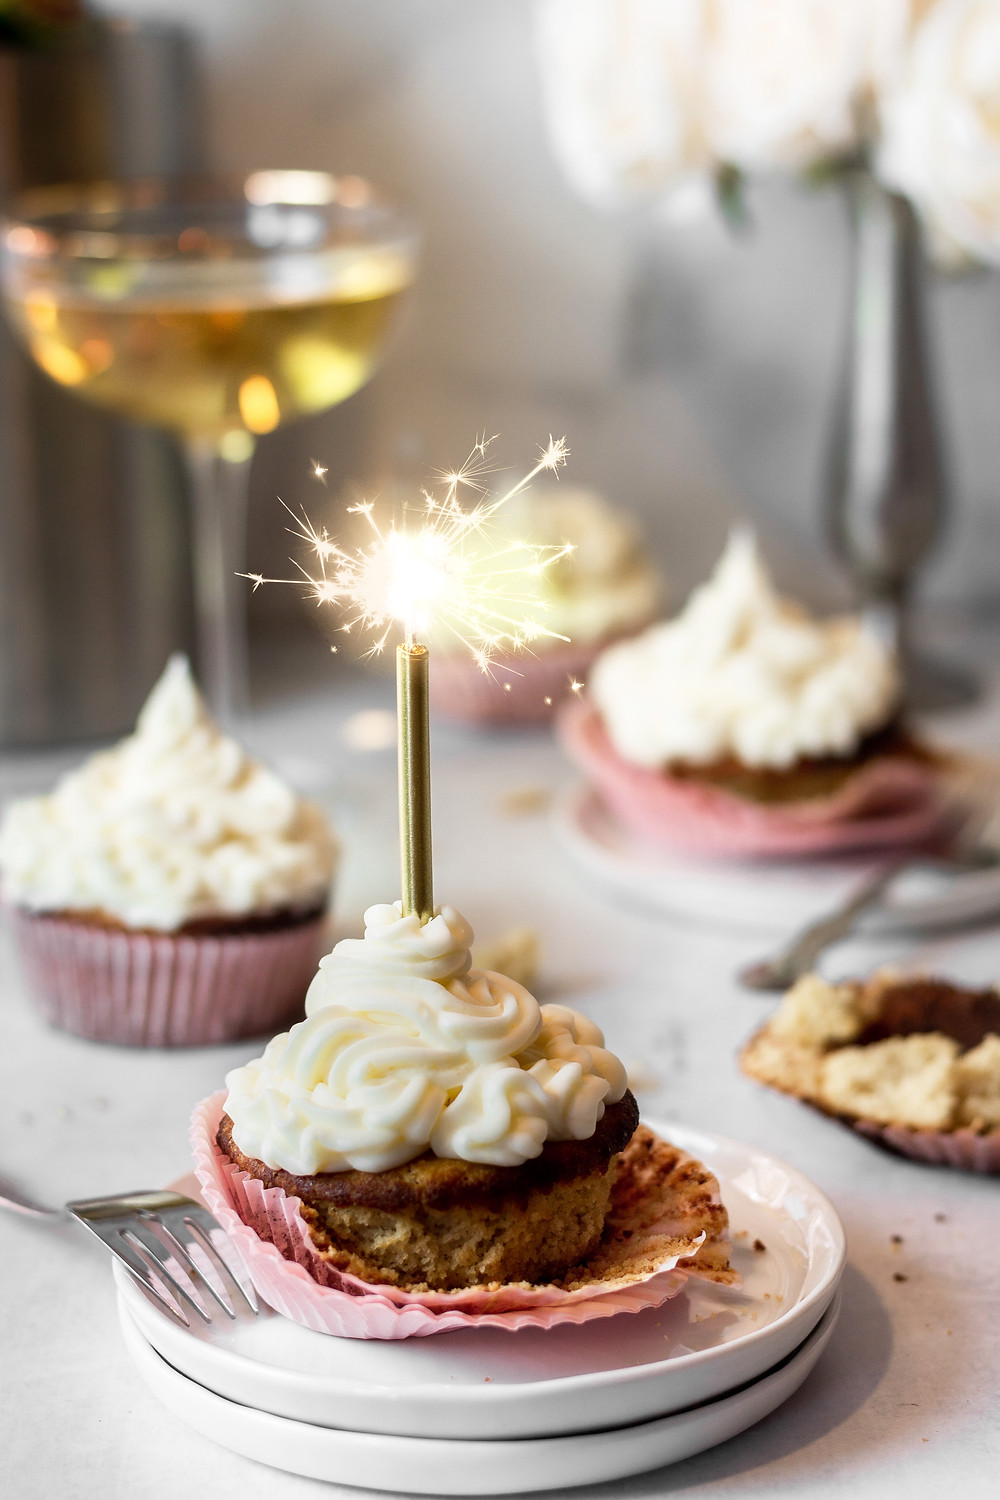 Paleo, Low Carb Champagne Cupcakes - A low FODMAP Dessert | Pretty Delicious Life - Are you as ready for a fresh start to a new year as I am?! What better way to ring in the new year than with these grain free champagne celebration cupcakes?! I sure can't think of one.